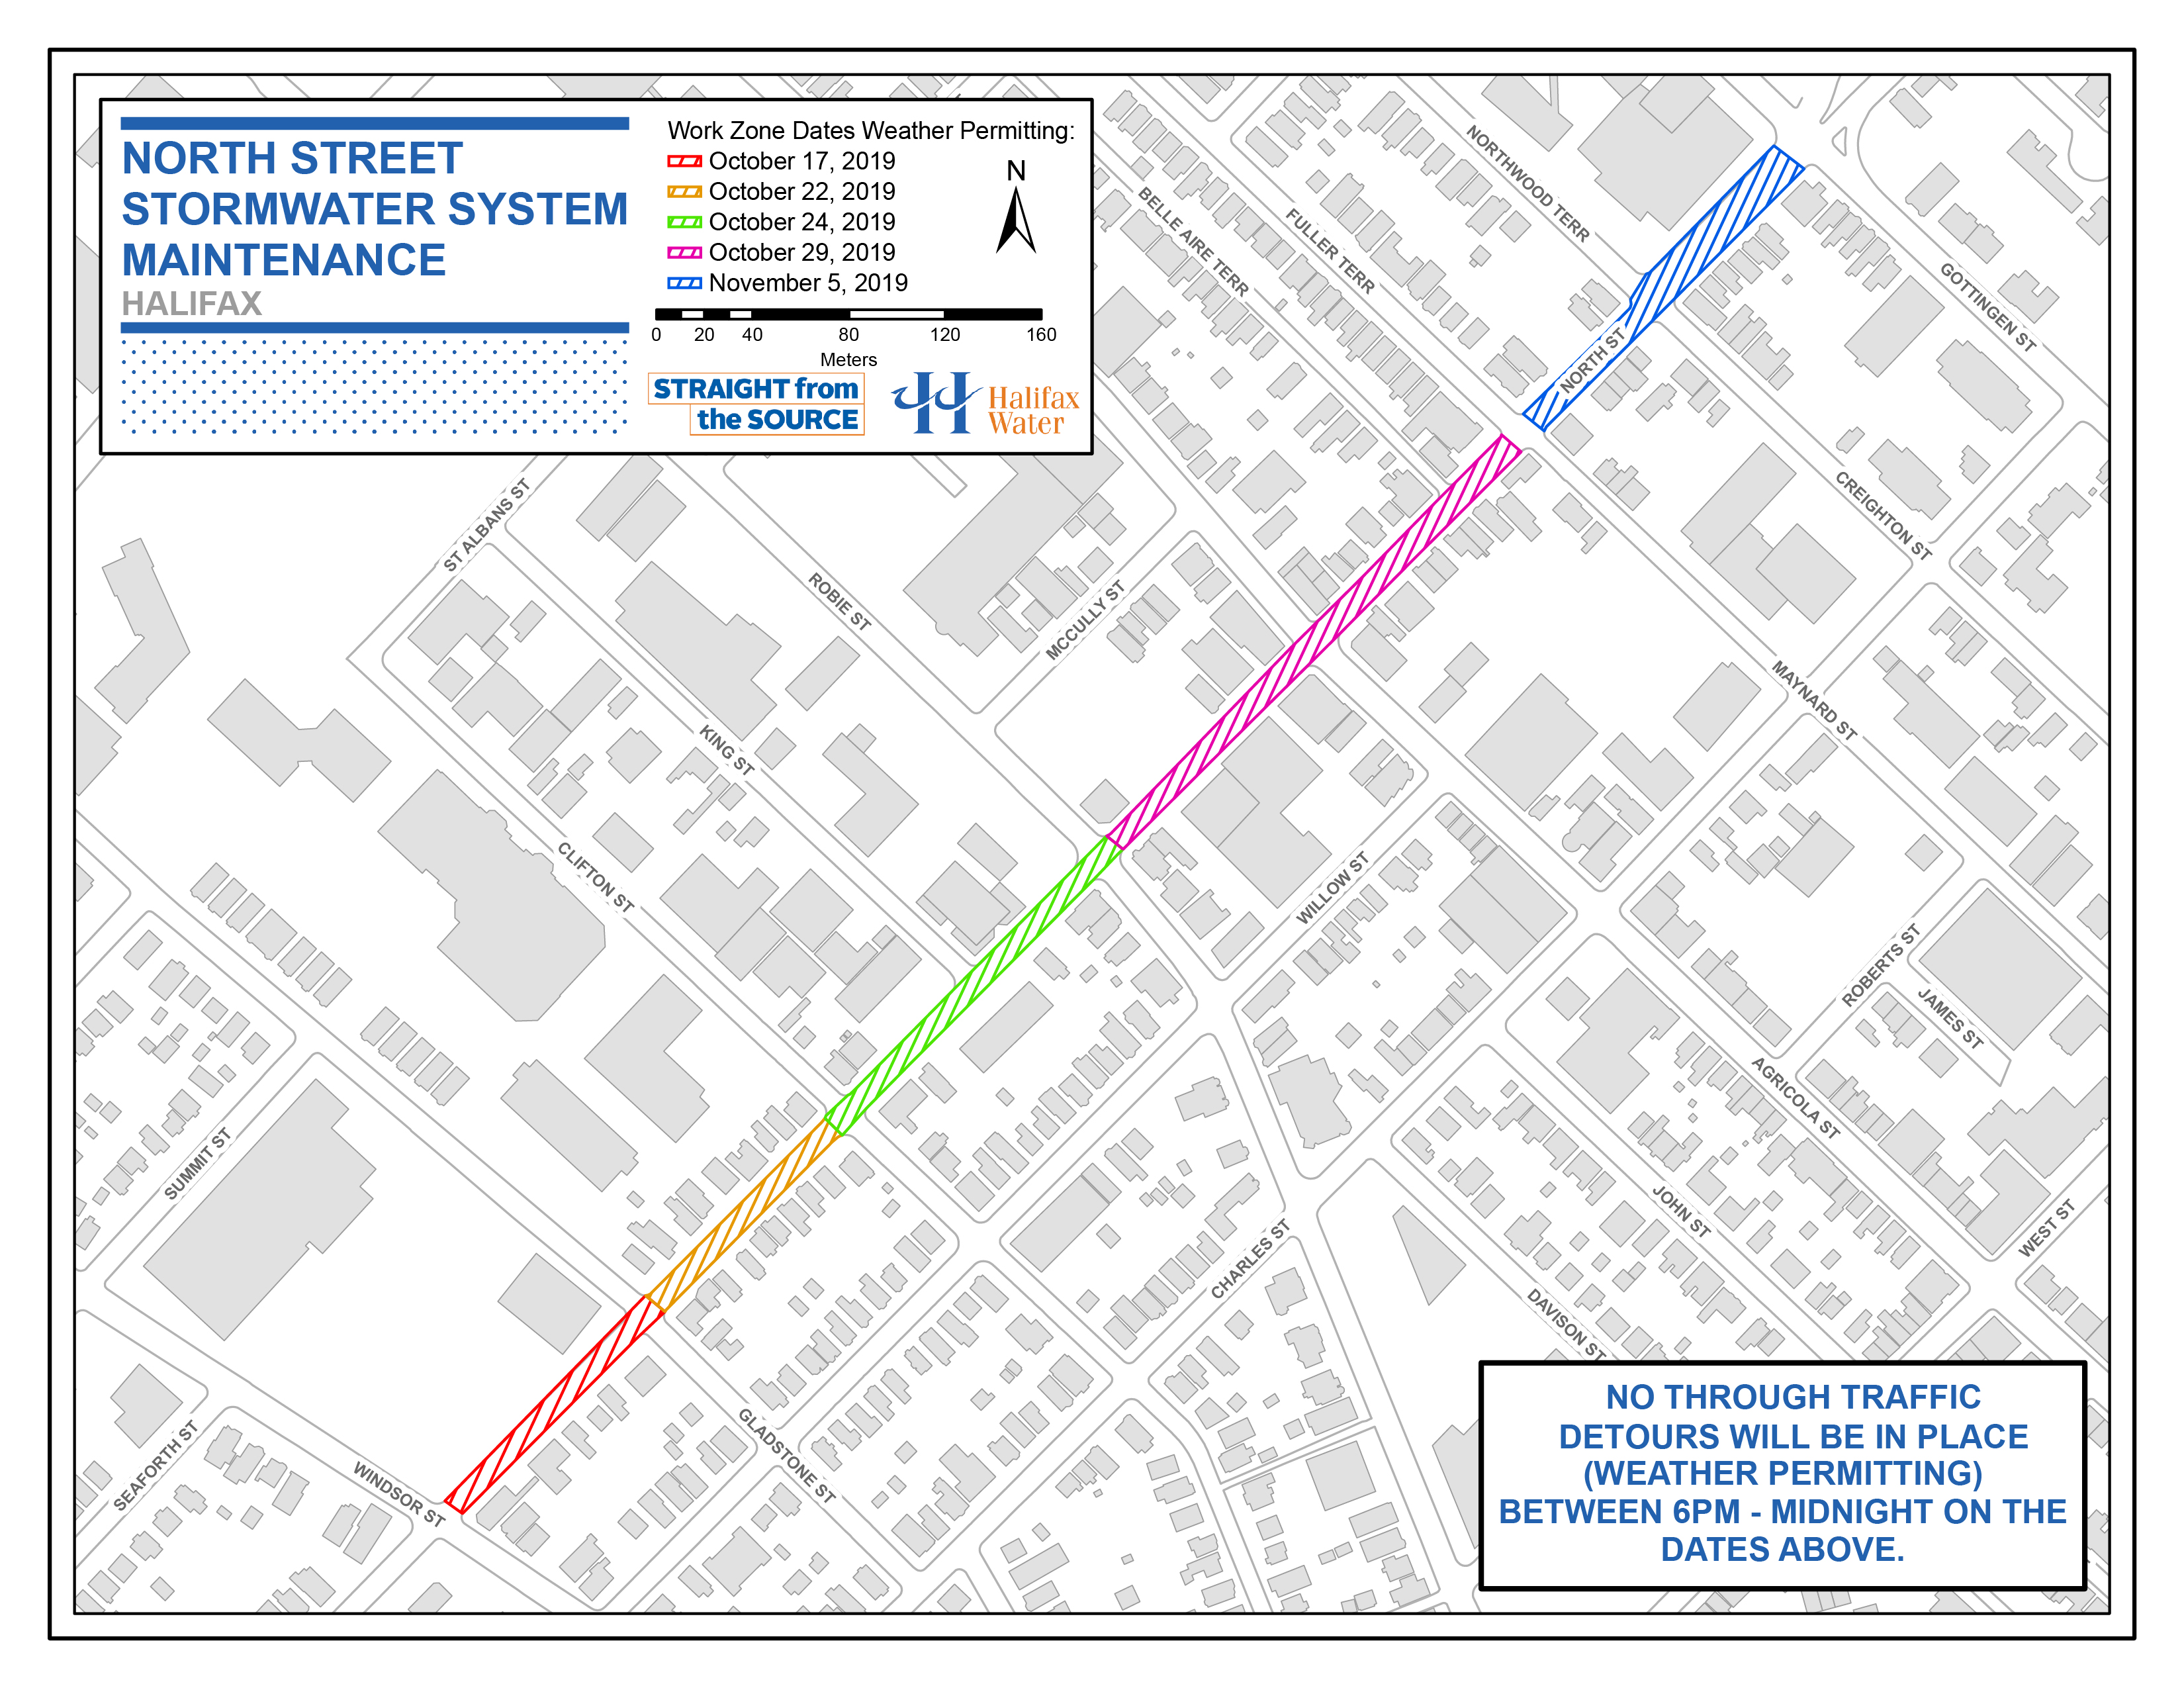 Halifax Water PSA Map - October 15 2019 - North Street - Stormwater System Maintenance